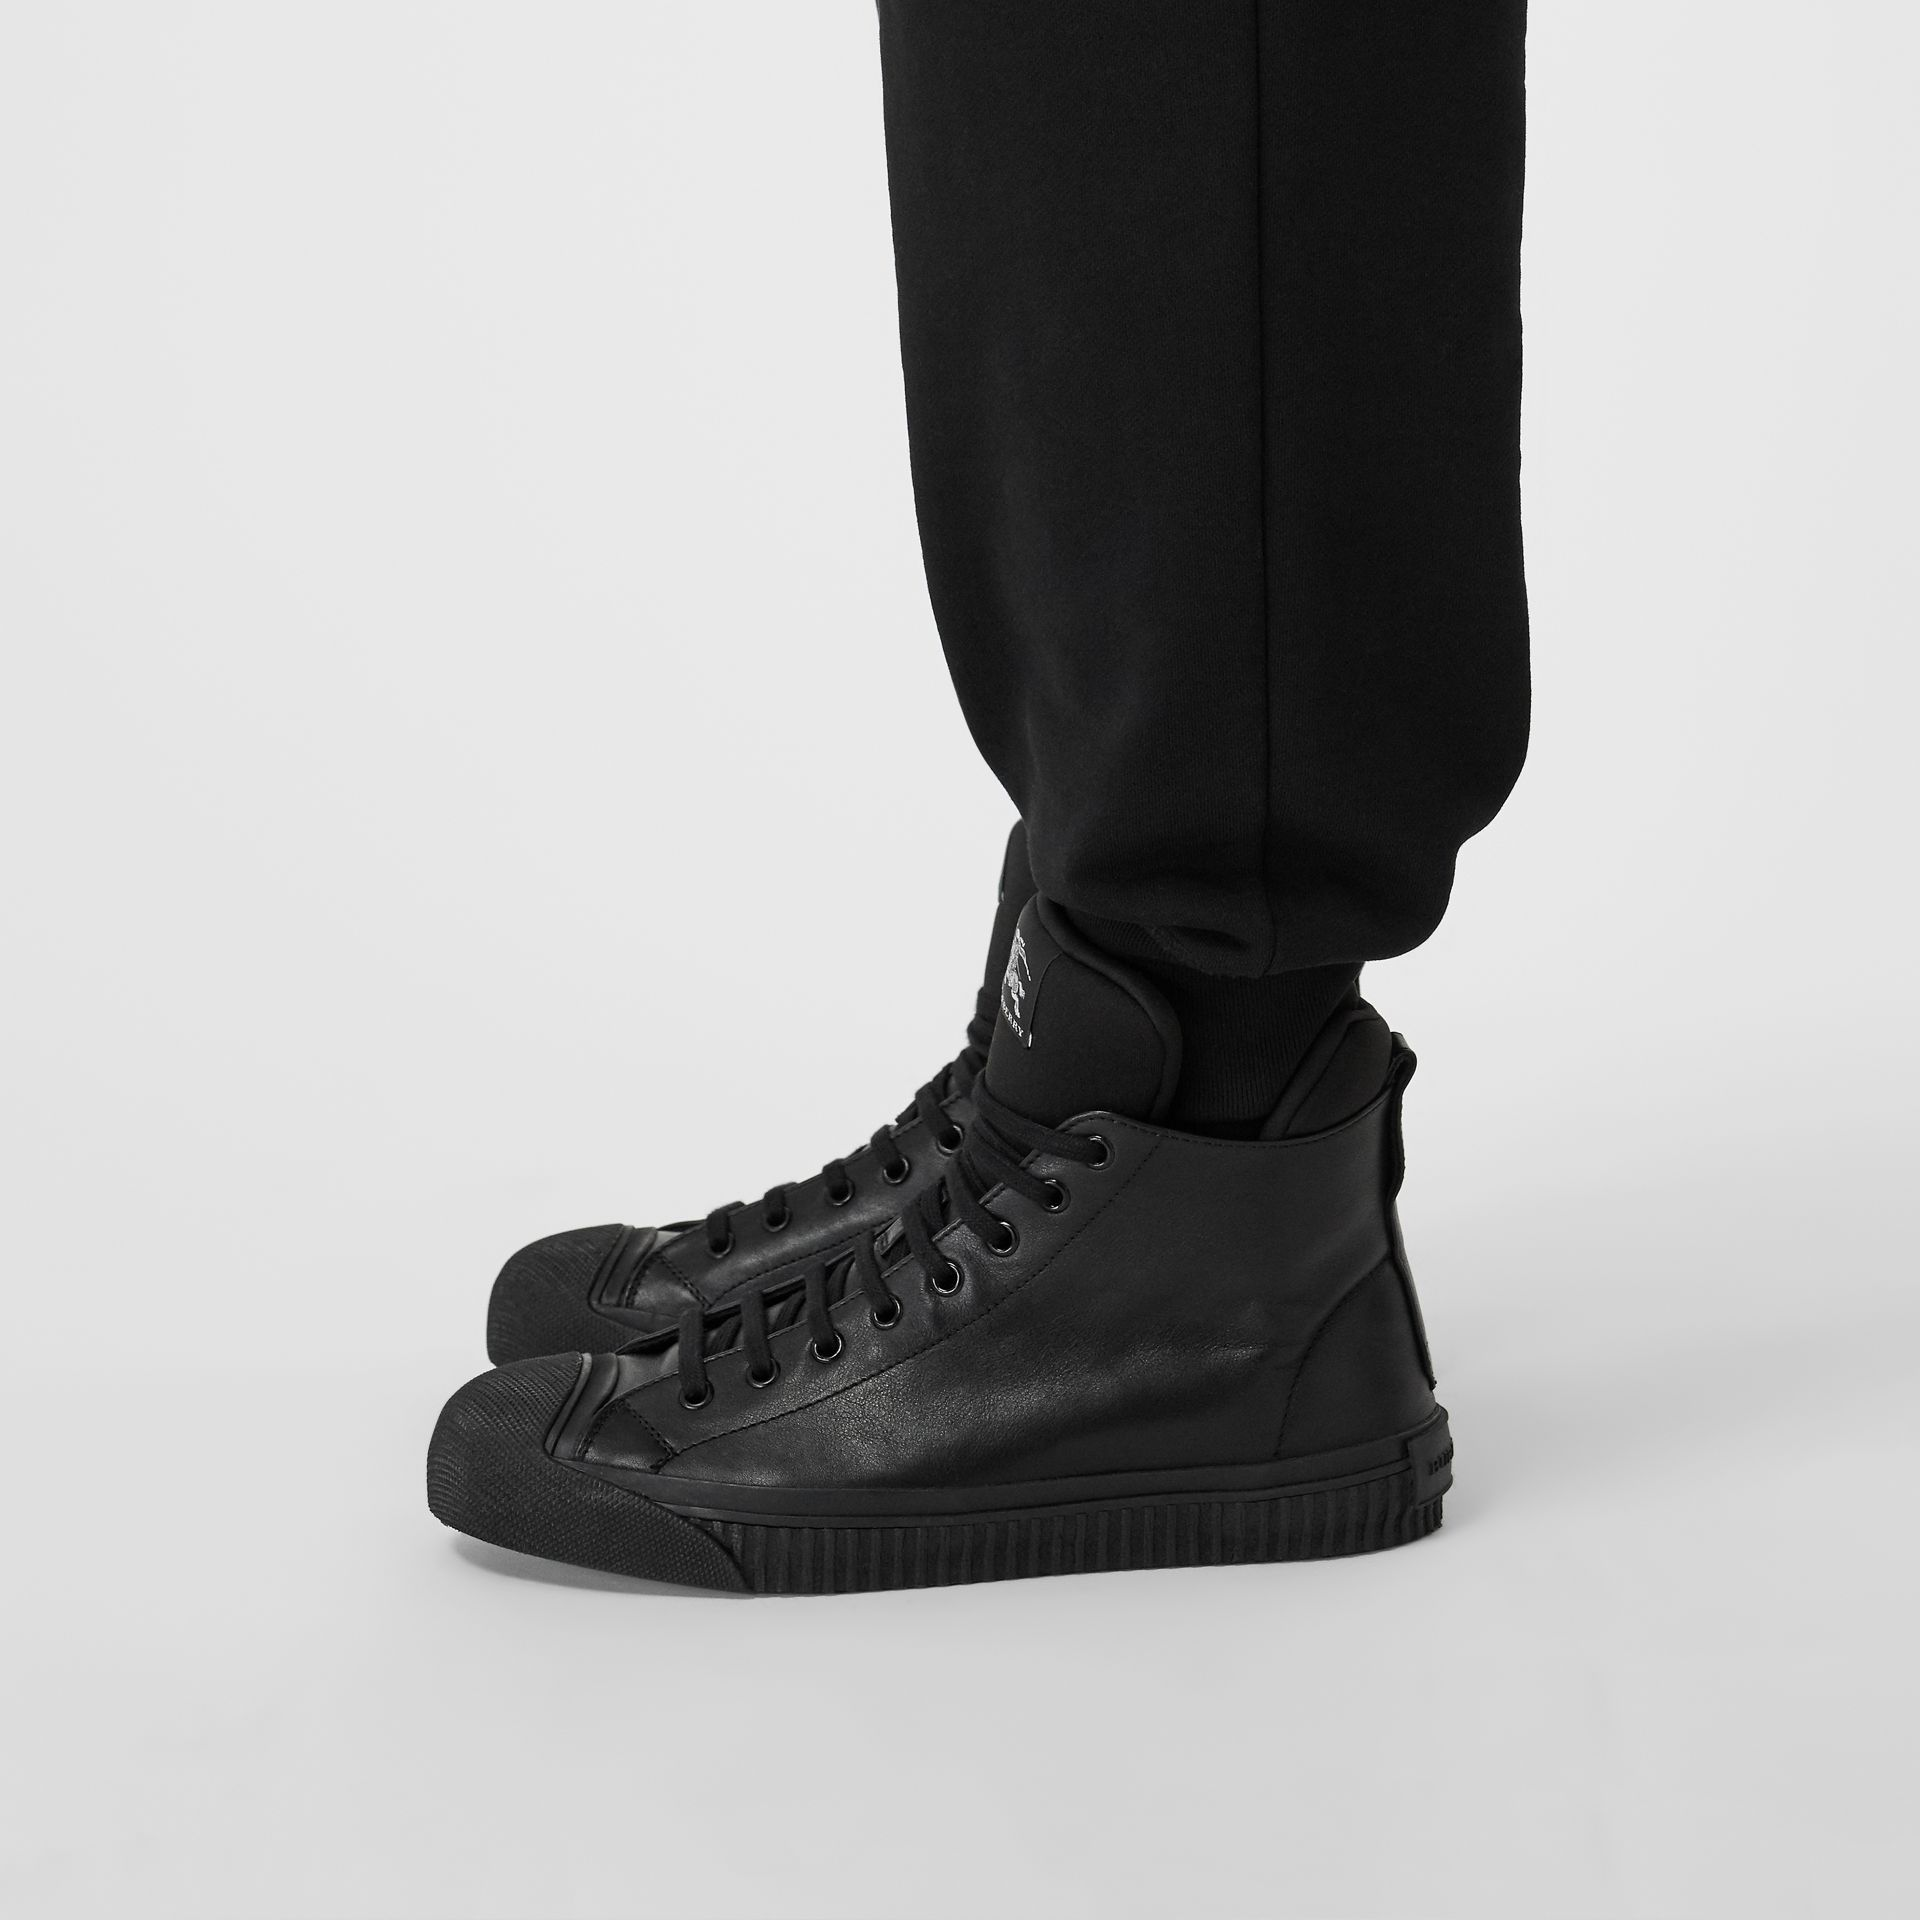 Leather and Neoprene High-top Sneakers in Black - Men | Burberry - gallery image 2